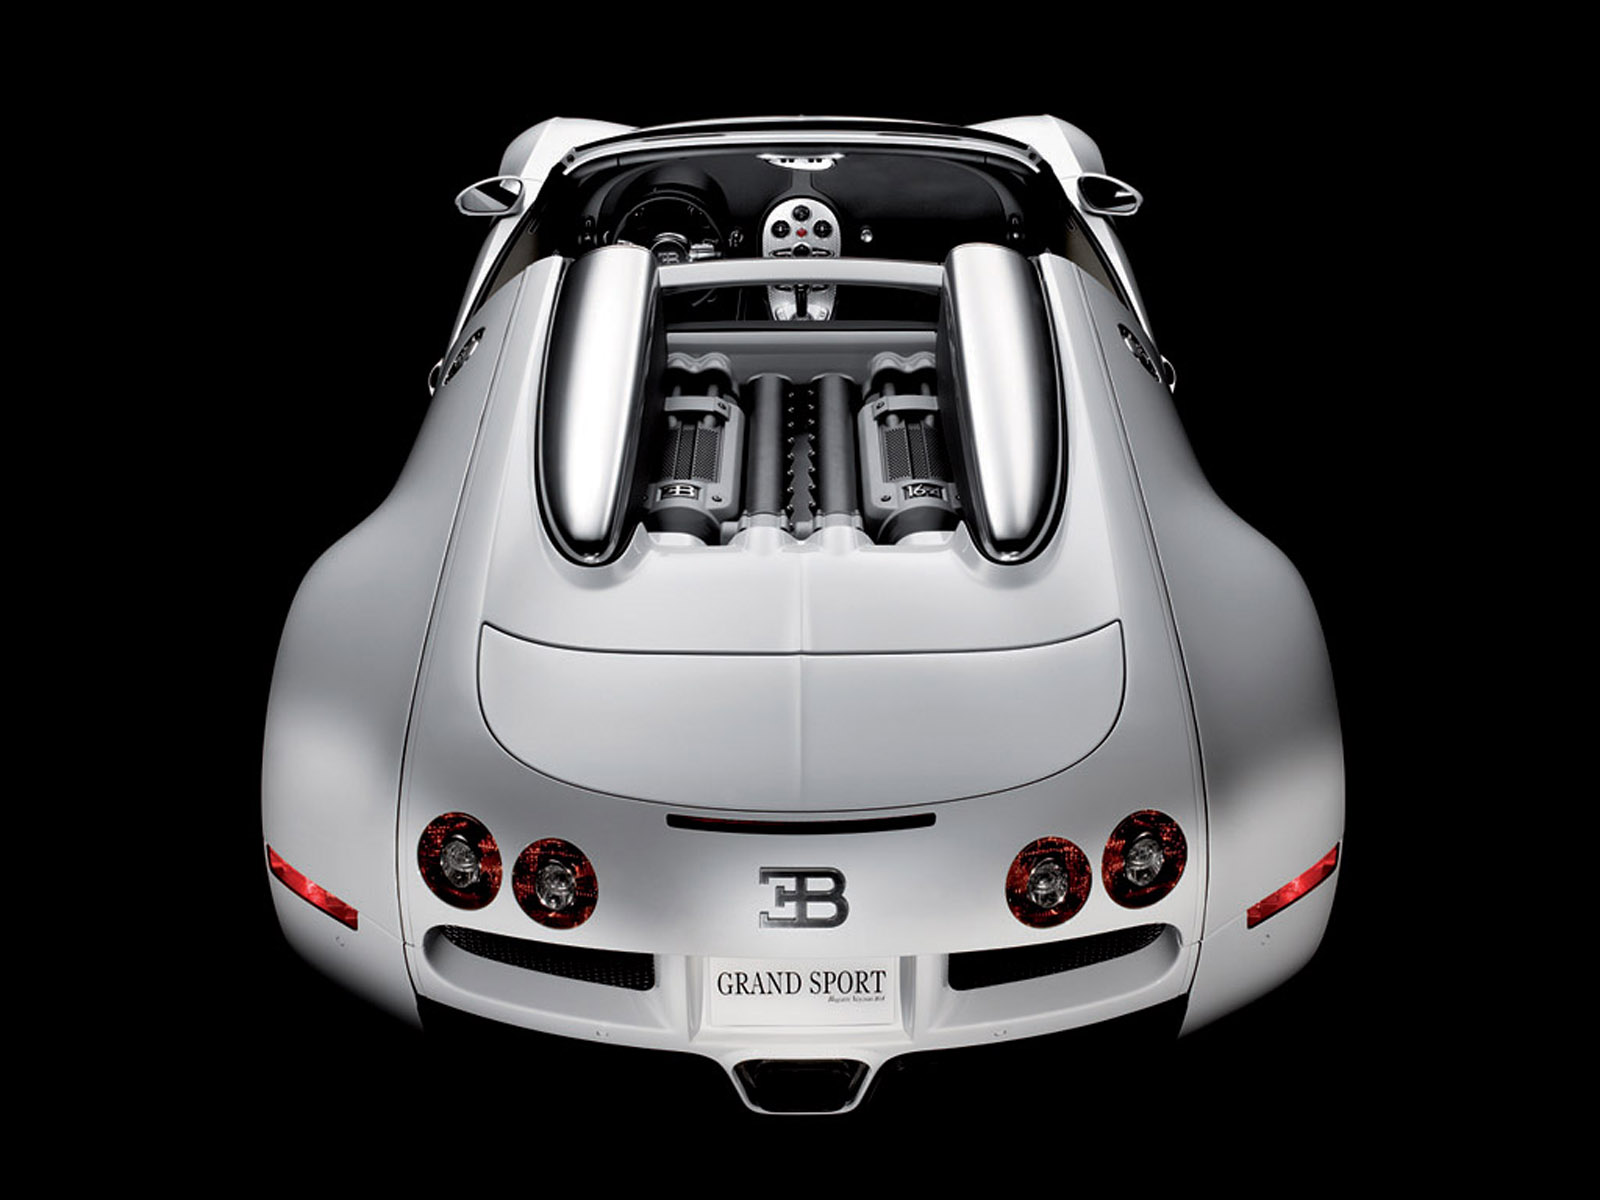 bugatti-164-veyron-grand-sport-back-view.jpg